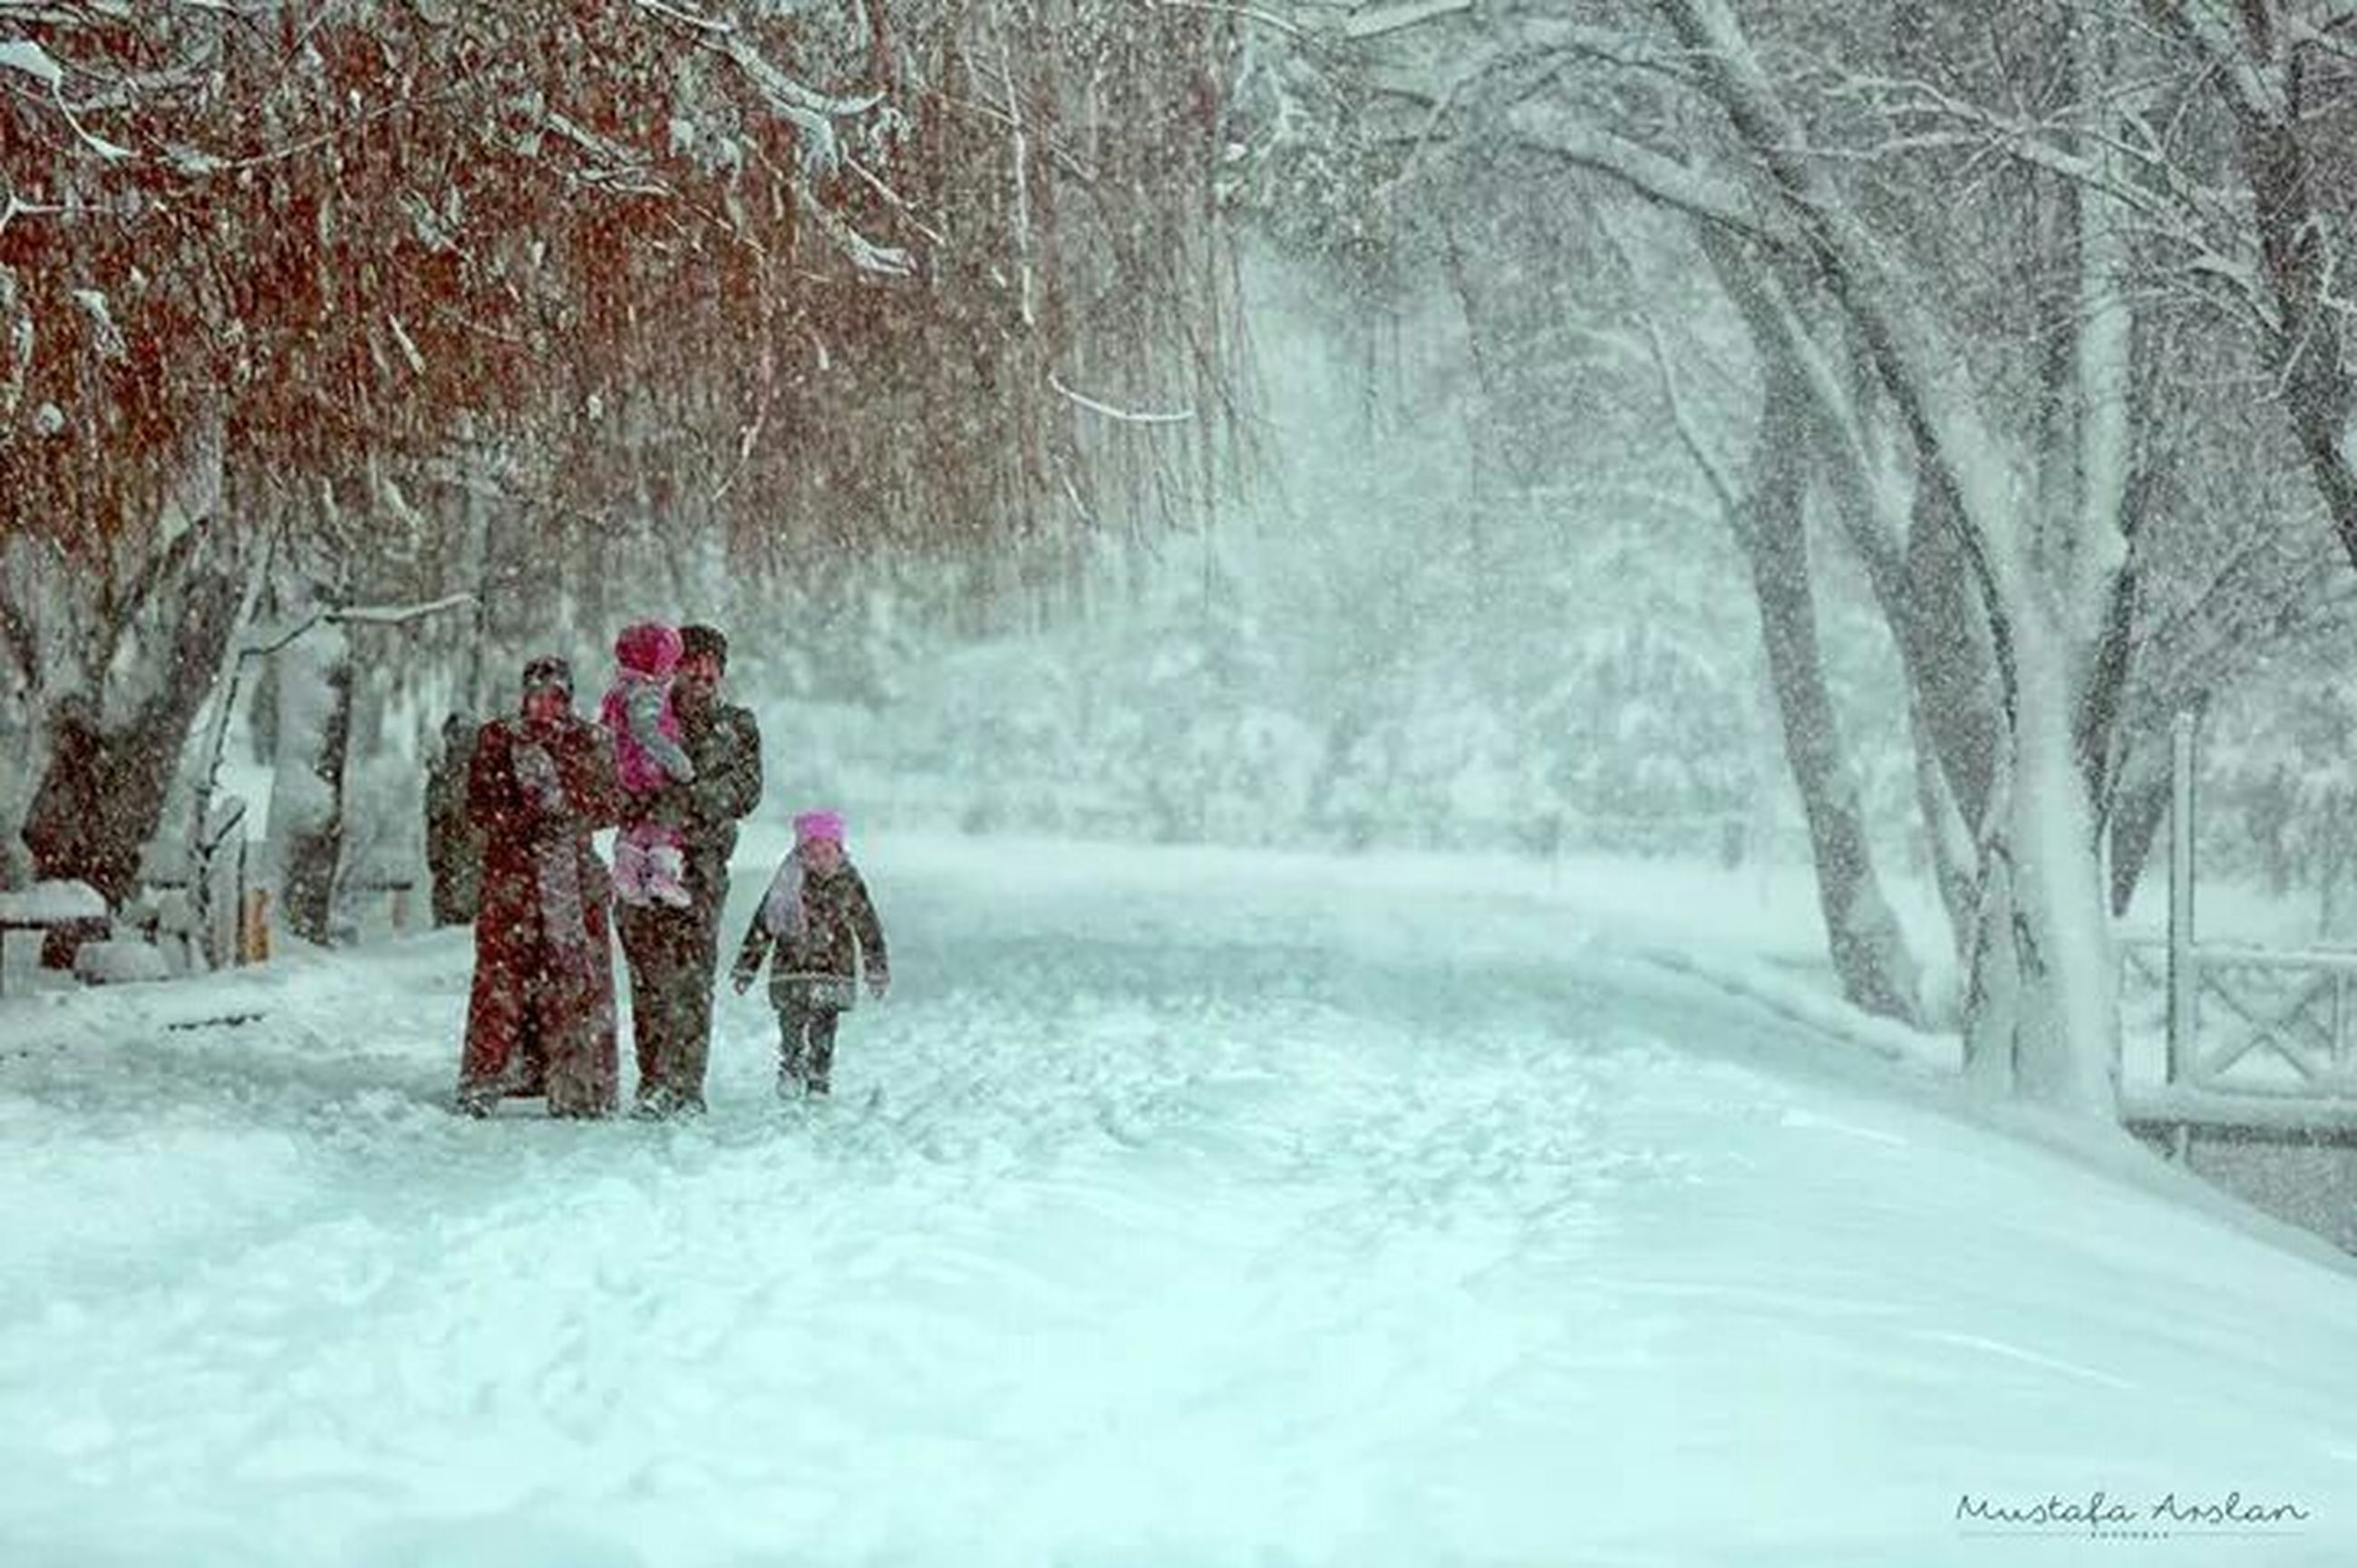 winter, snow, cold temperature, season, weather, tree, lifestyles, leisure activity, warm clothing, full length, bare tree, men, covering, rear view, field, dog, frozen, park - man made space